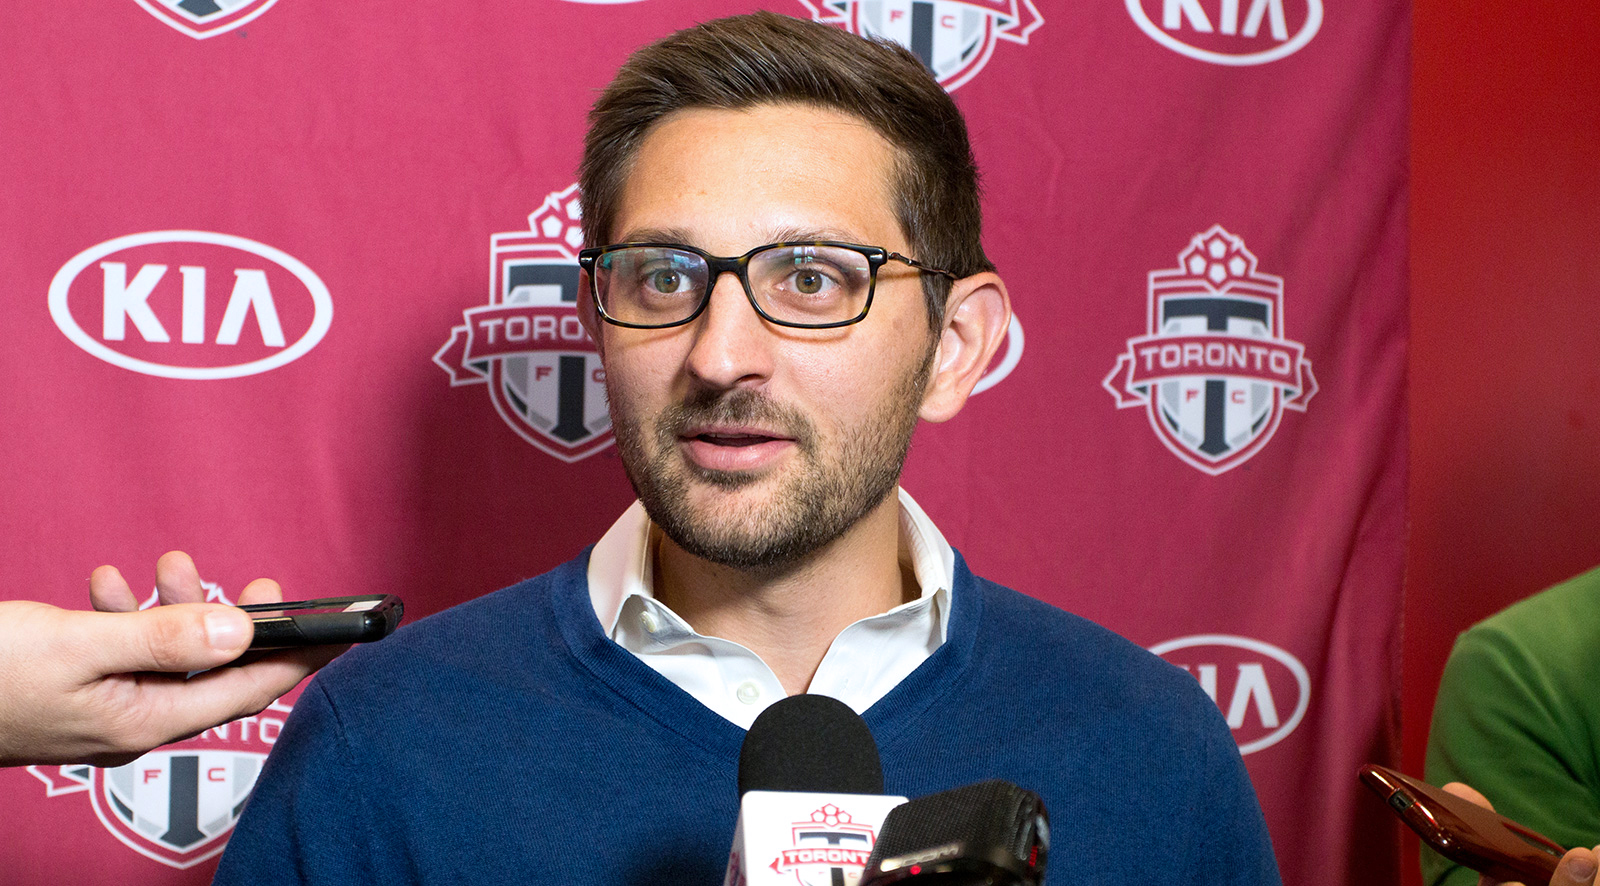 Toronto FC General Manager Tim Bezbatchenko sspeaking about the upcoming hopes for the 2016 MLS Playoffs.Photo by Dennis Marciniak